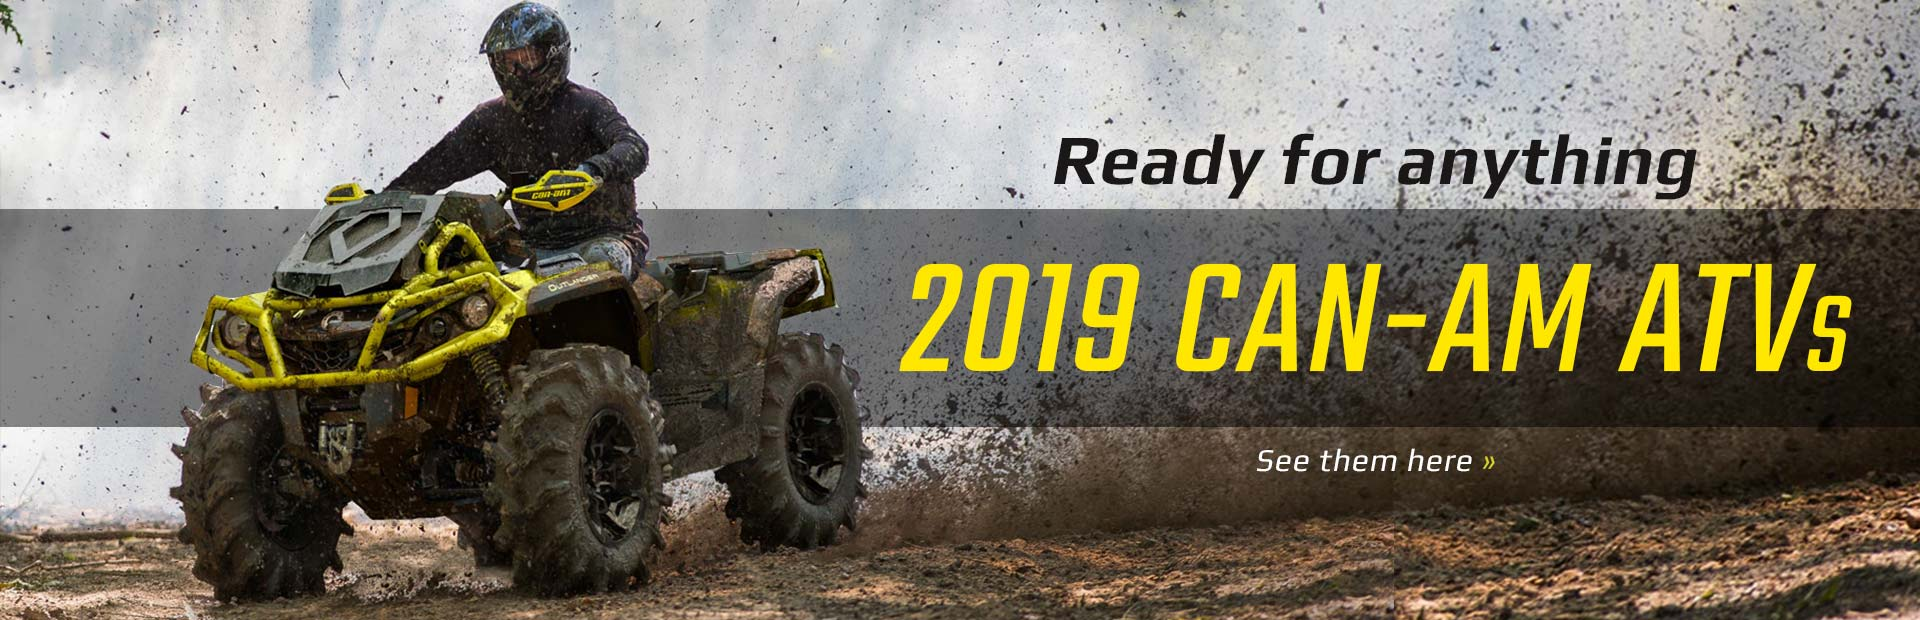 2019 Can-Am ATVs: Click here to view the models.